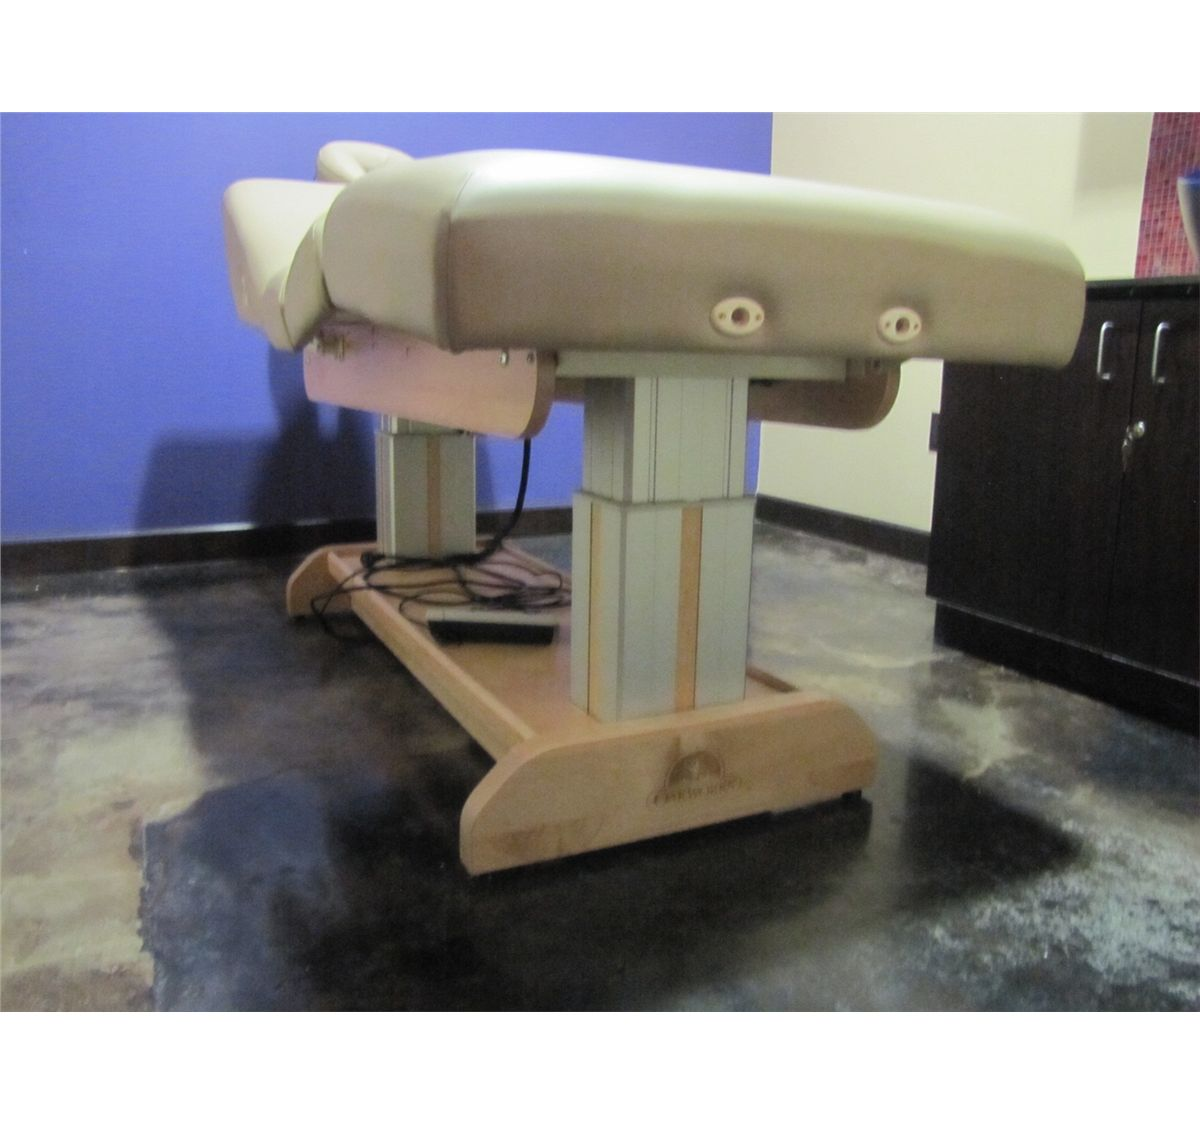 image 2 oakworks hydraulic massage table with pillow fs00